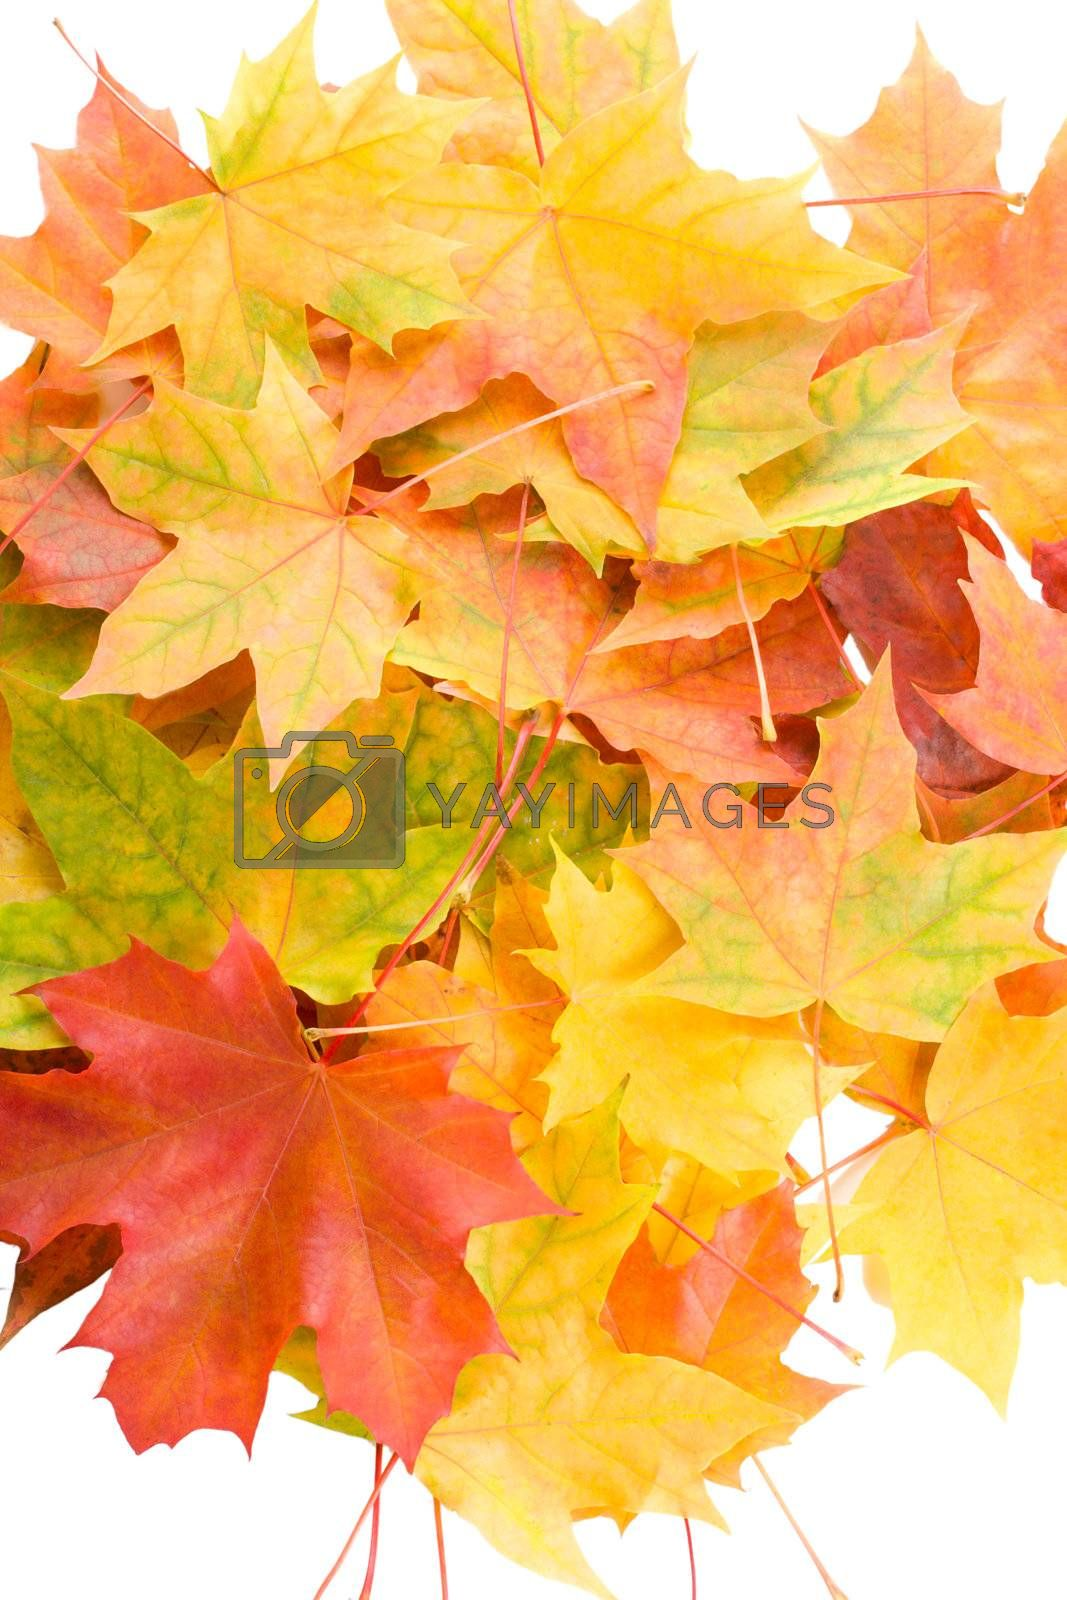 close-up autumn maple leaves